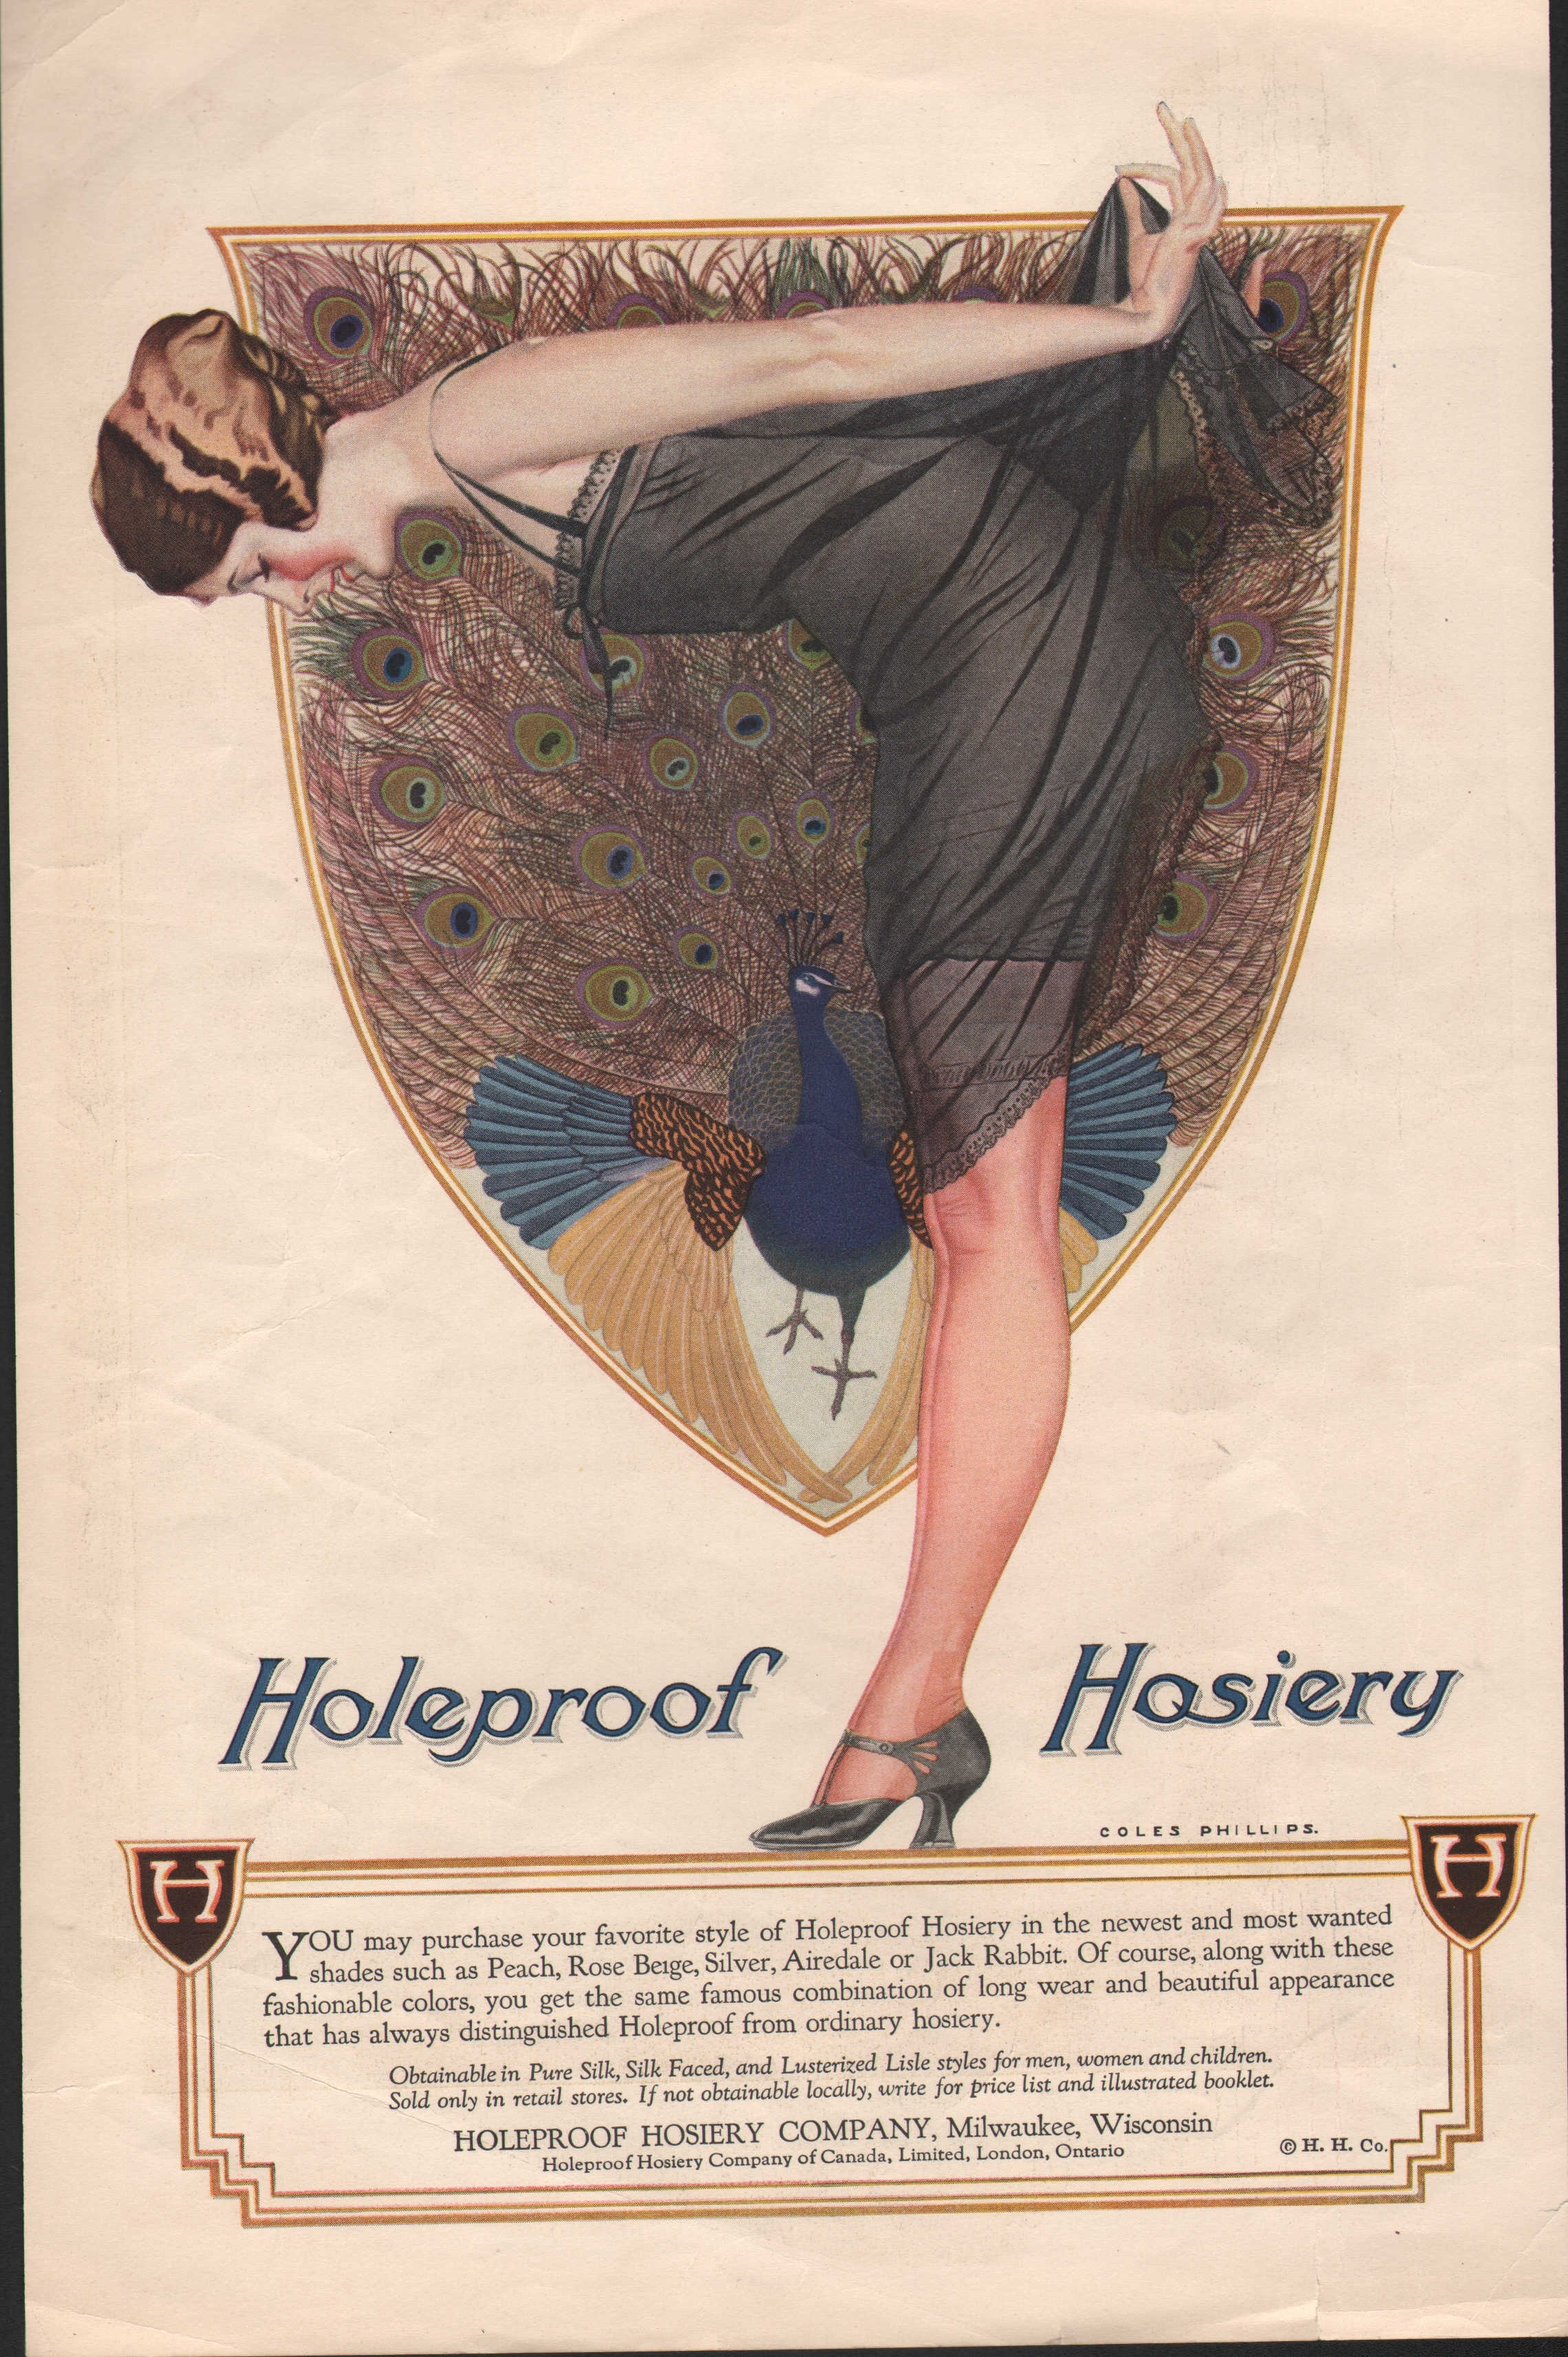 Holeproof Hosiery -1922 - Coles Phillips